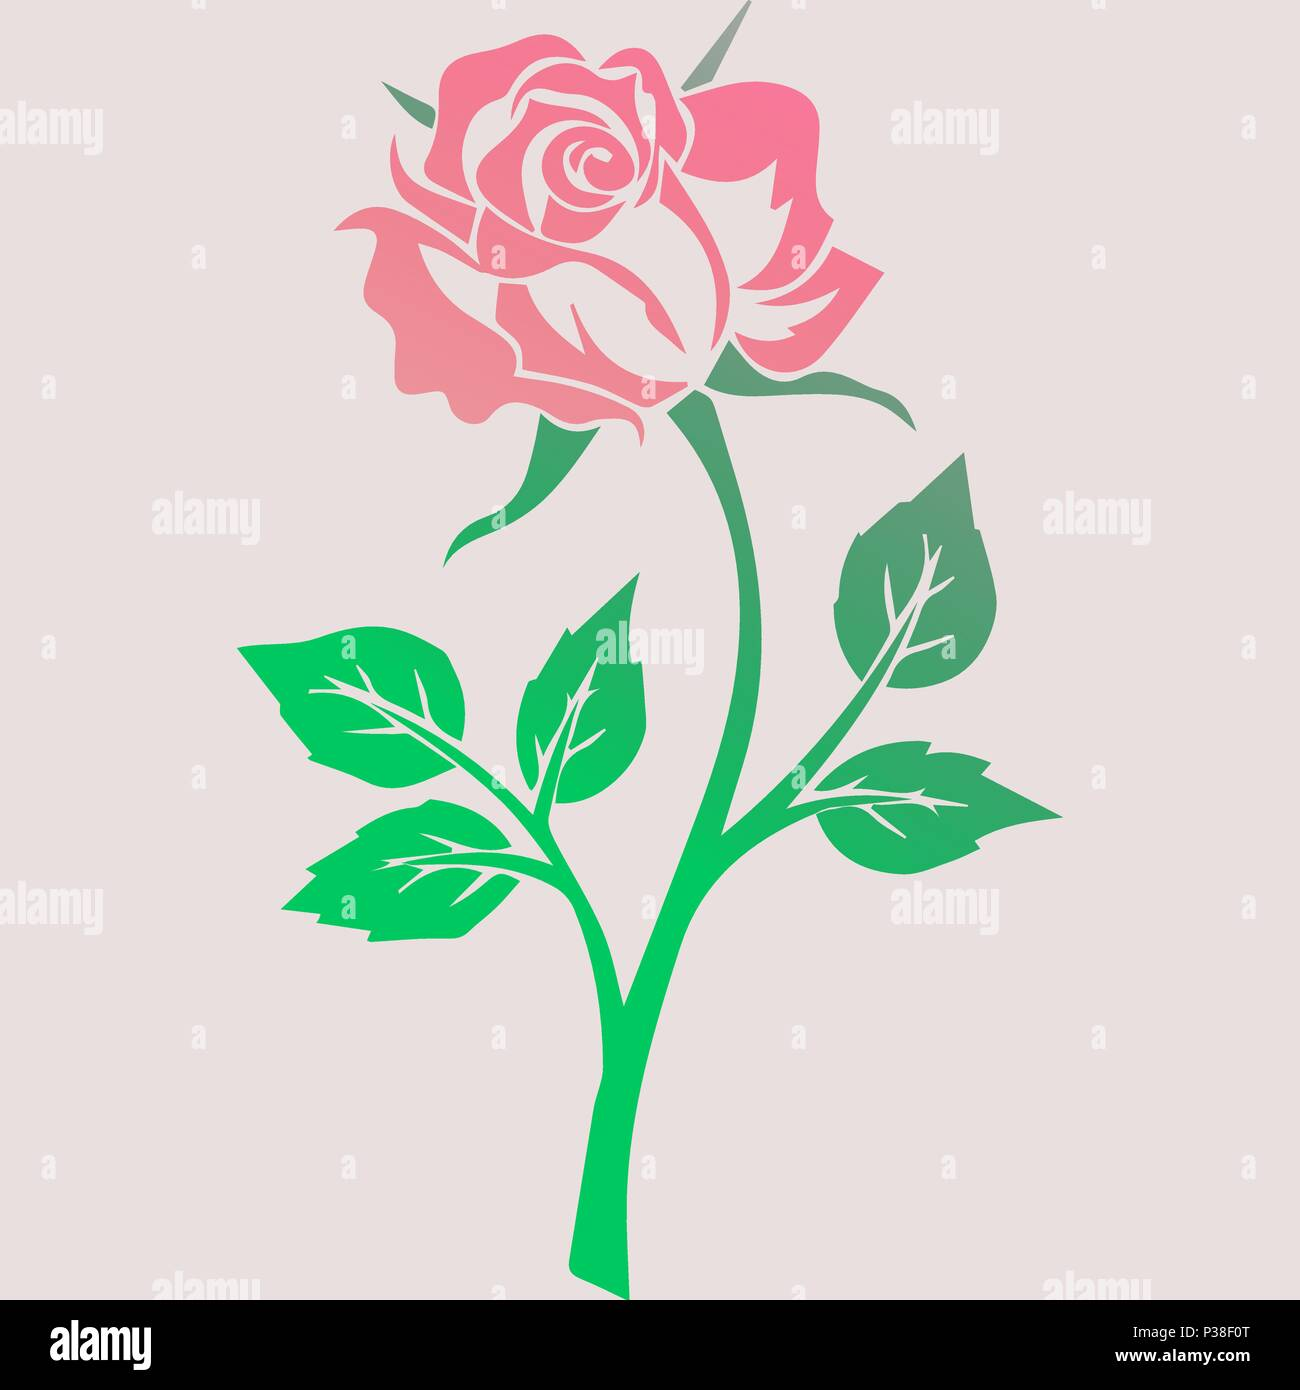 Vector illustration of a pink rose in gentle flowers - Stock Vector